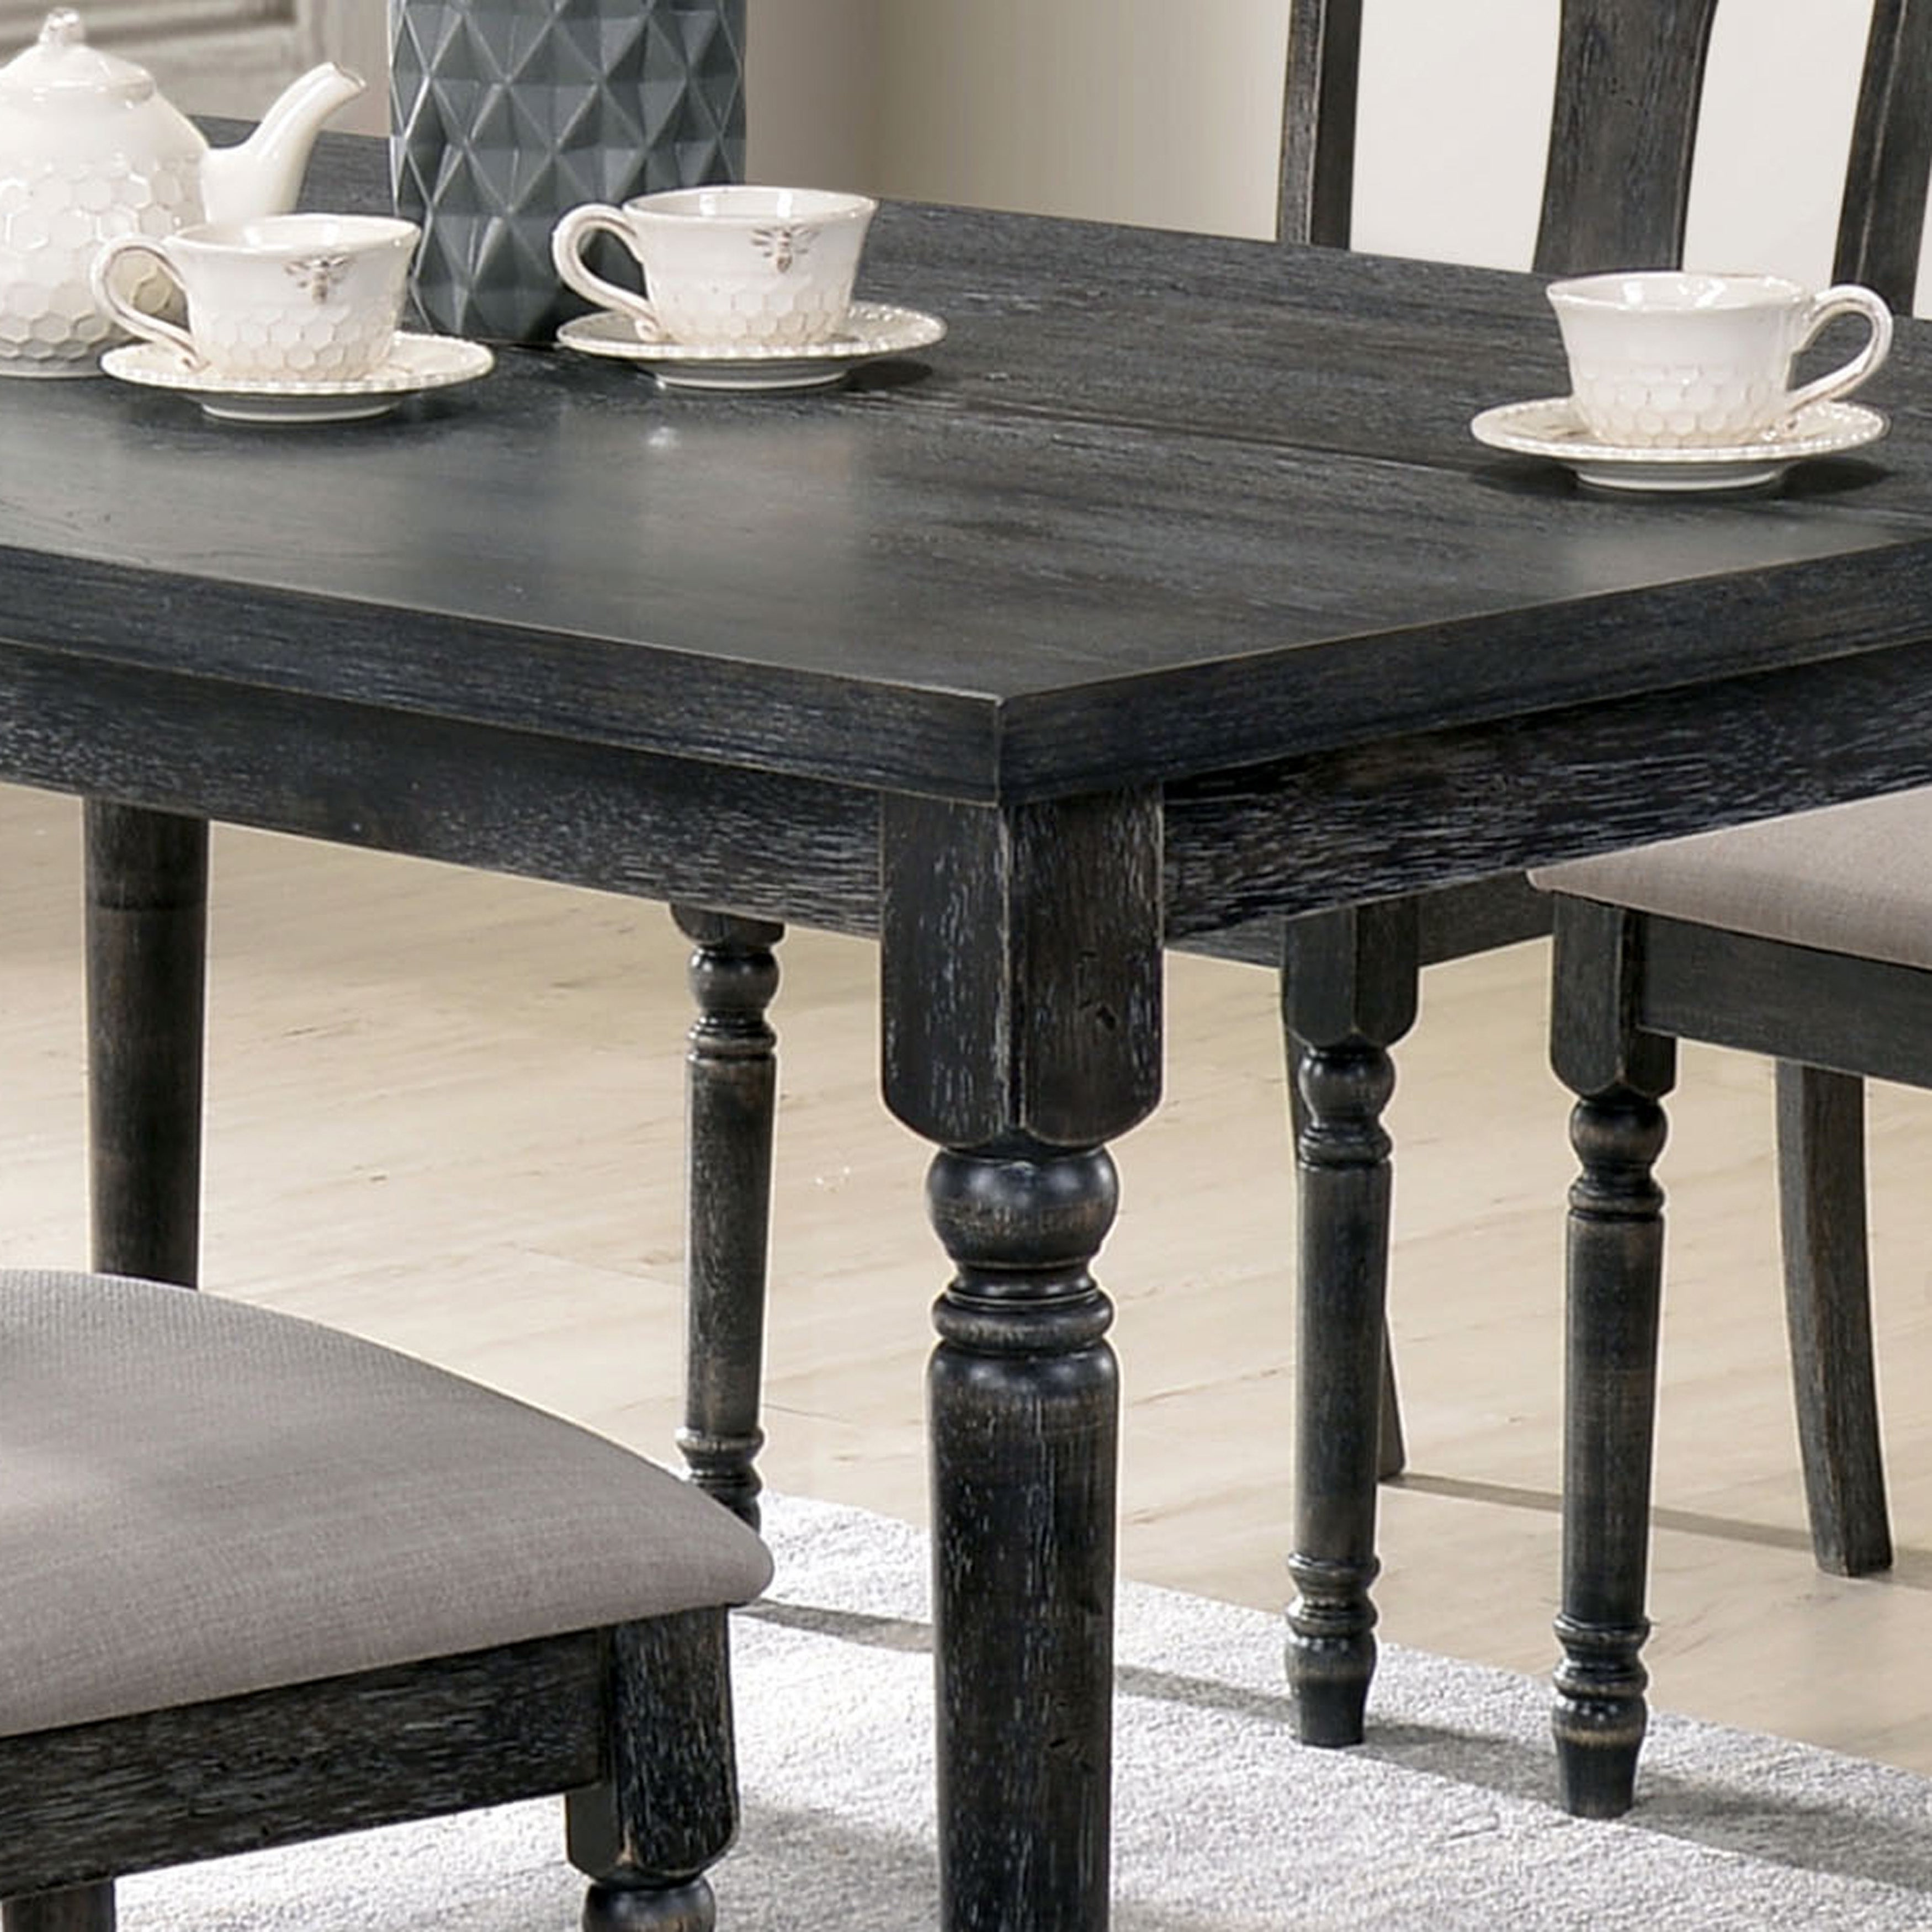 Super Carbon Loft Schneider Rustic Grey 59 Inch Dining Table Lamtechconsult Wood Chair Design Ideas Lamtechconsultcom